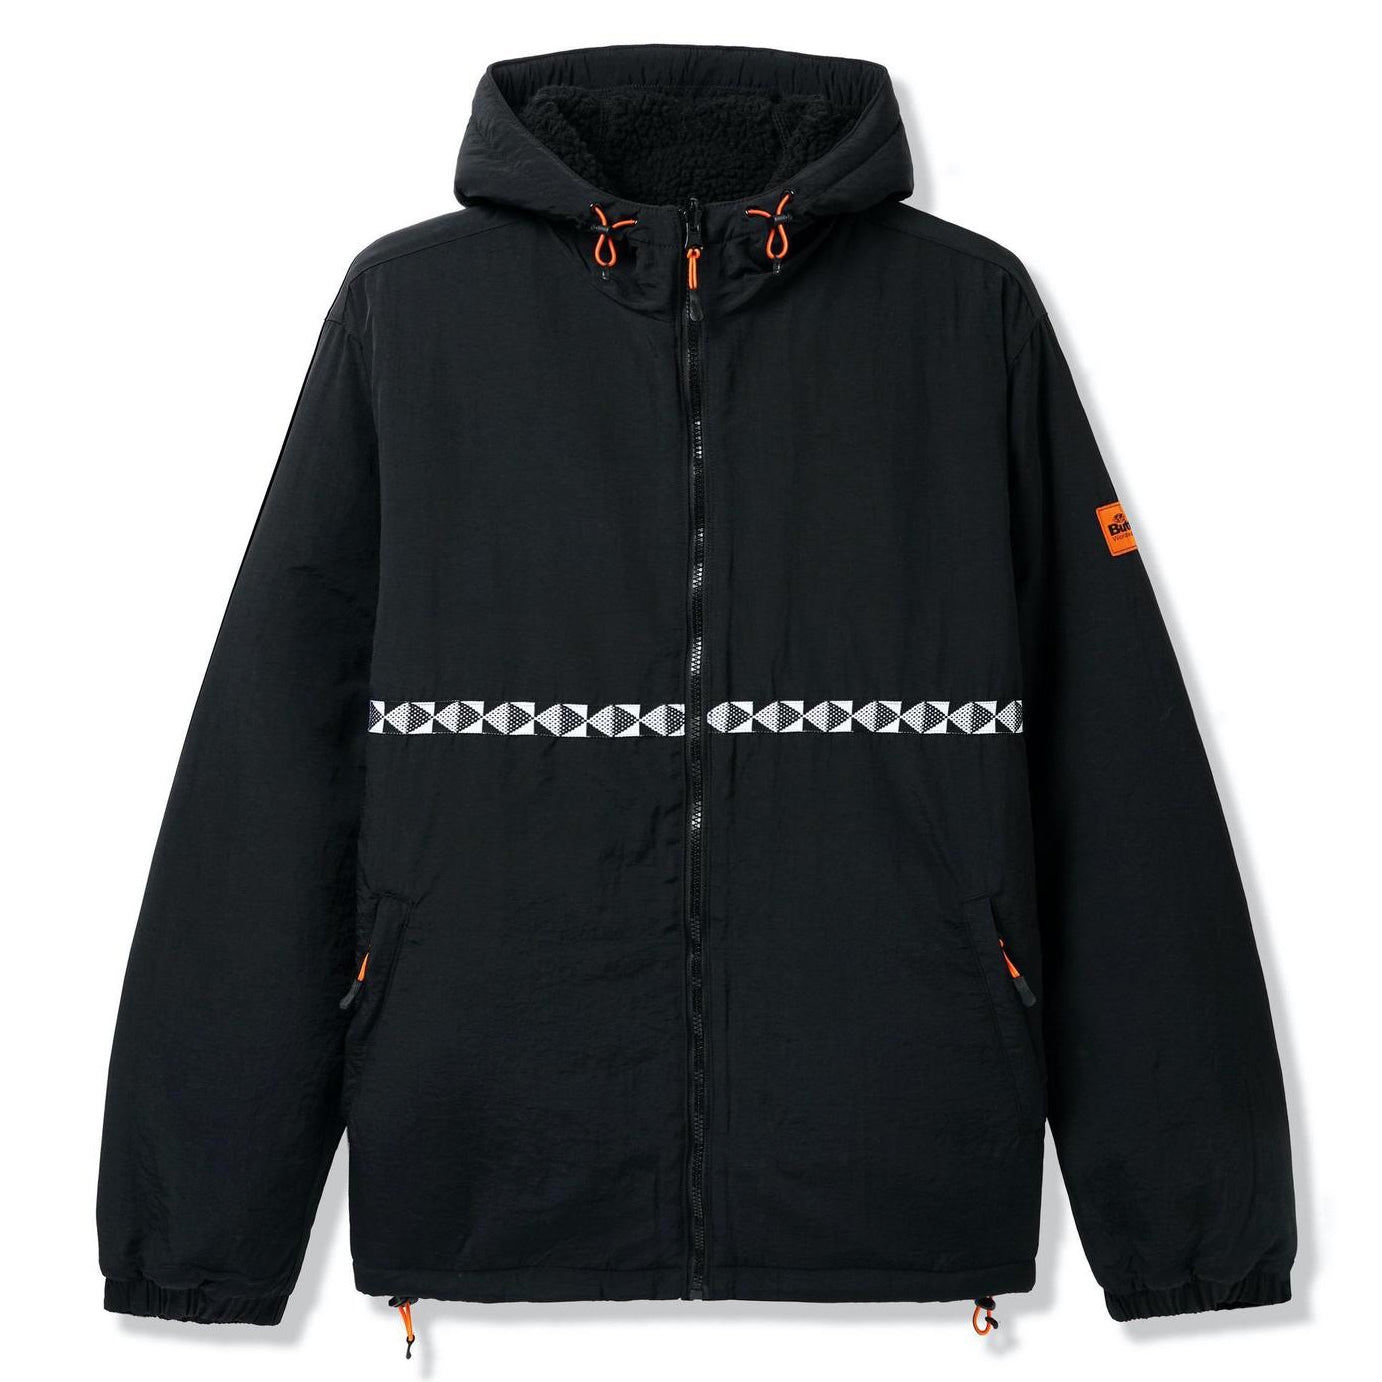 Butter Goods Base Camp Reversible Jacket Black/Black